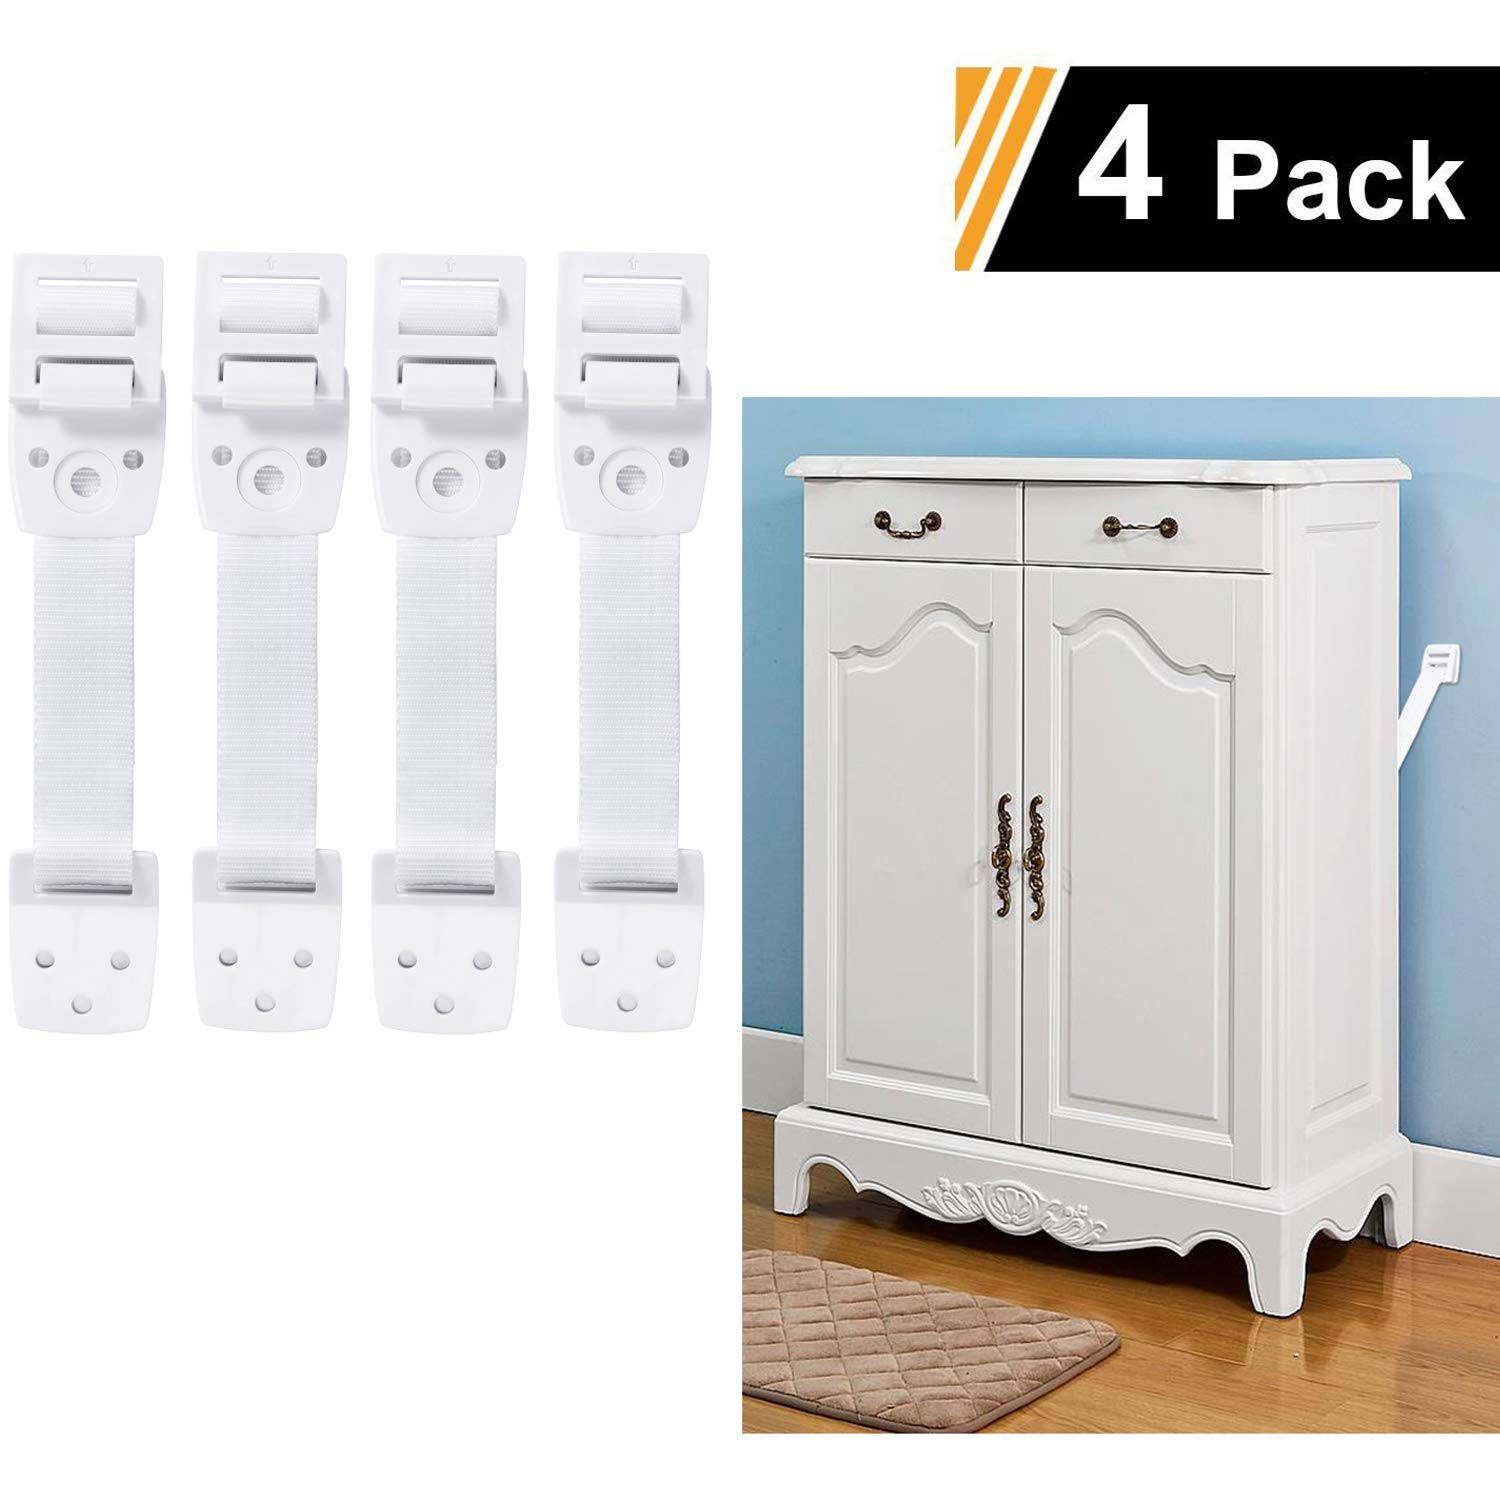 Adoric 4-Pack Anti-Tip Furniture Anchor / TV Straps Kits, Adjustable for All Flat Screens and Cabinets, Child/ Baby Proofing for Dresser Bookshelf, Mounting Hardware Included by Adoric Life